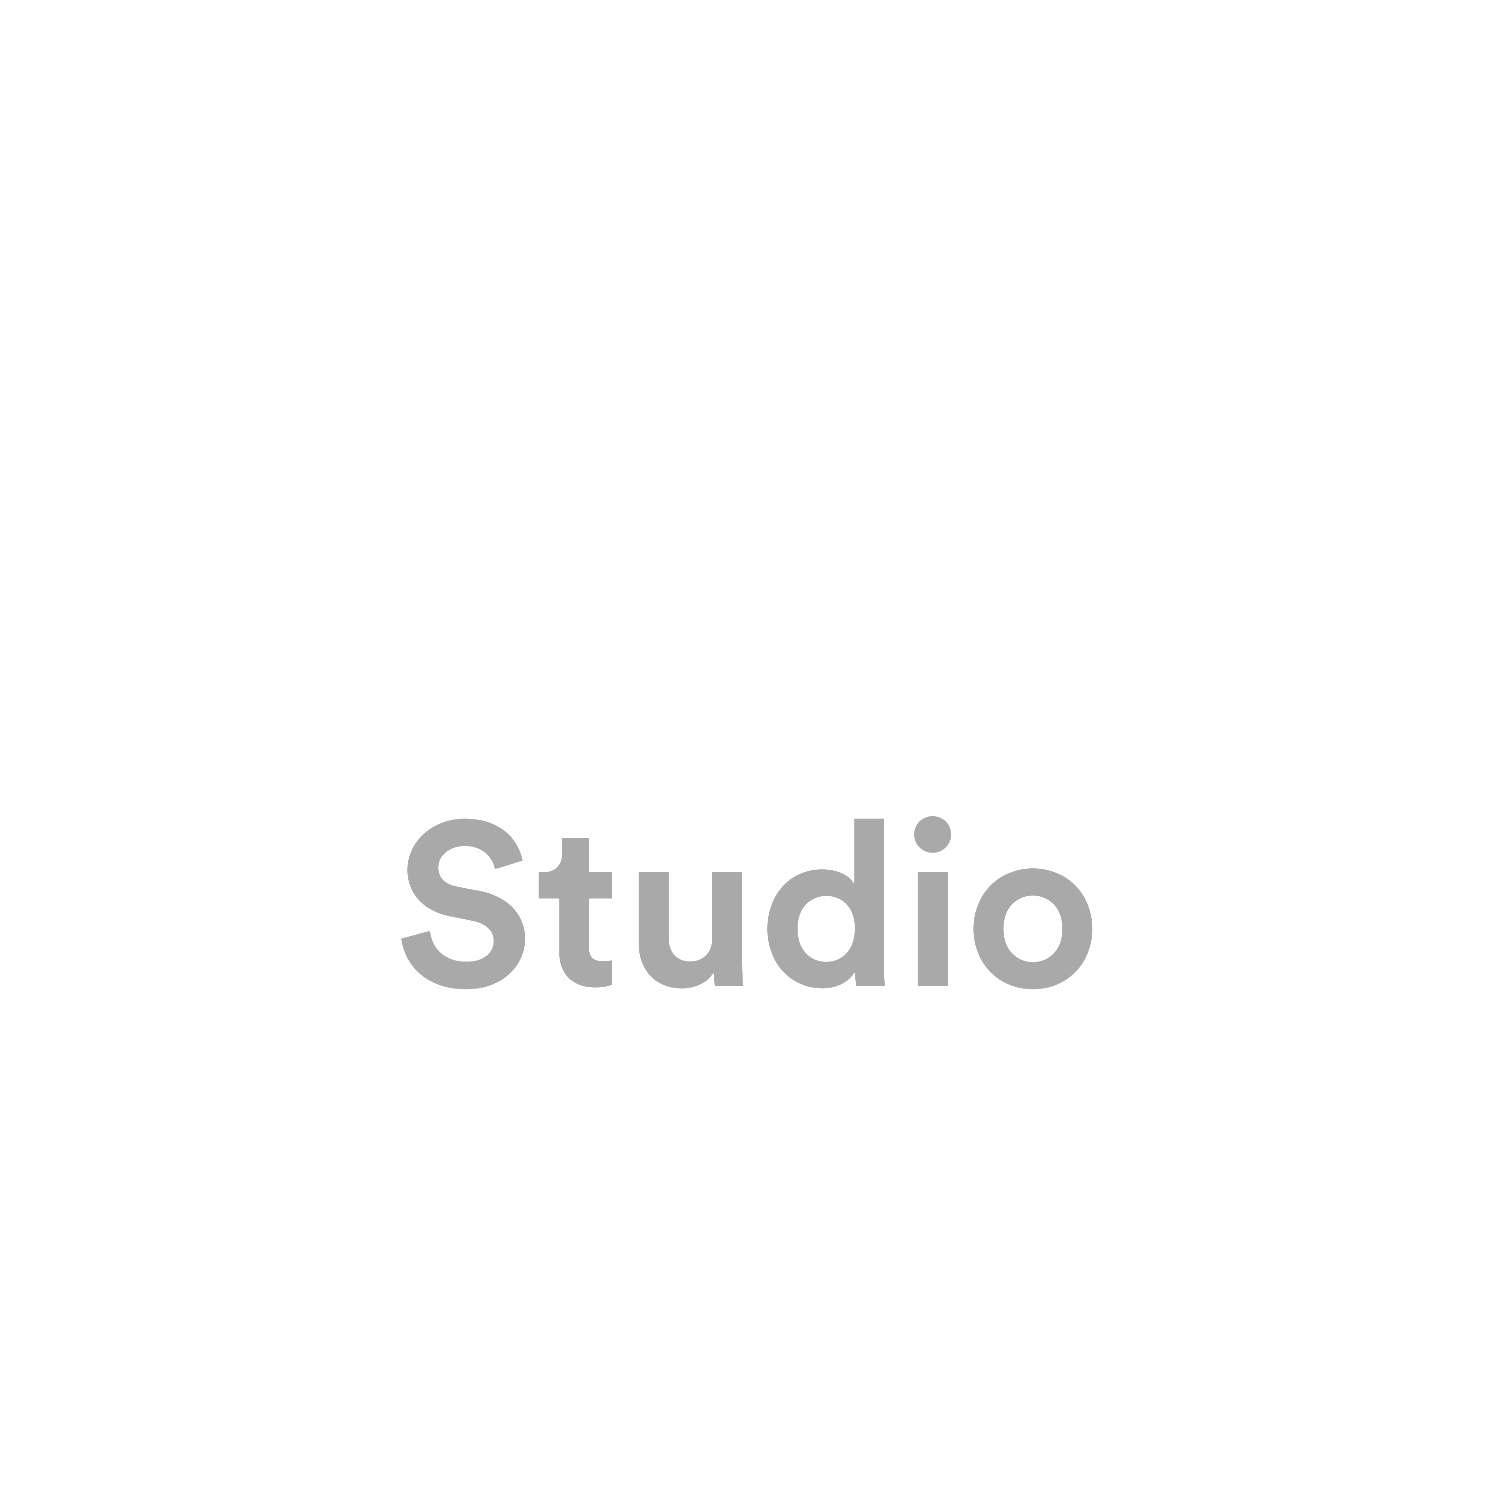 METHOD STUDIO